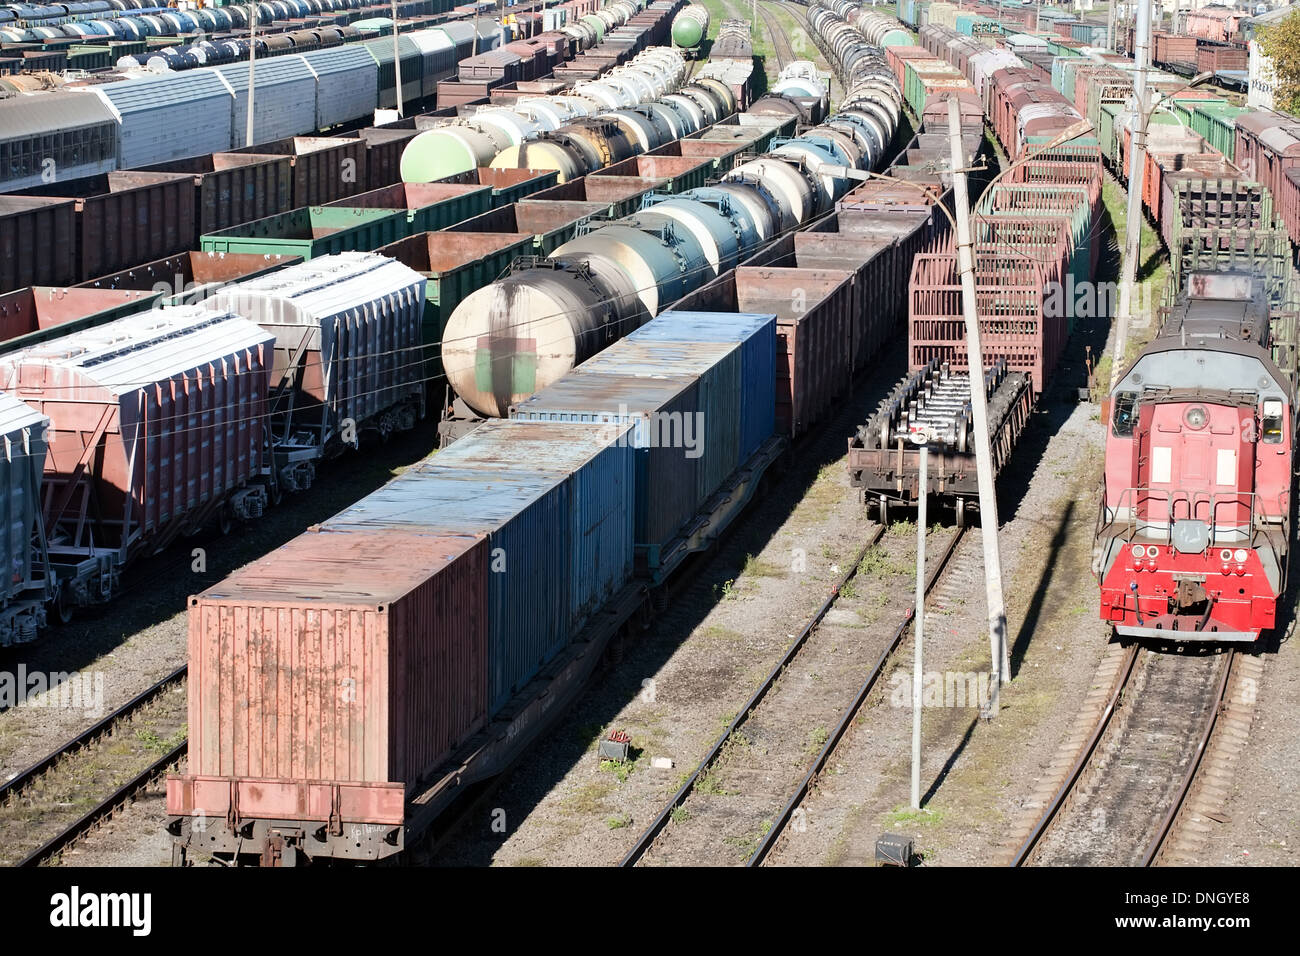 industrial view with lot of freight railway trains waggons - Stock Image